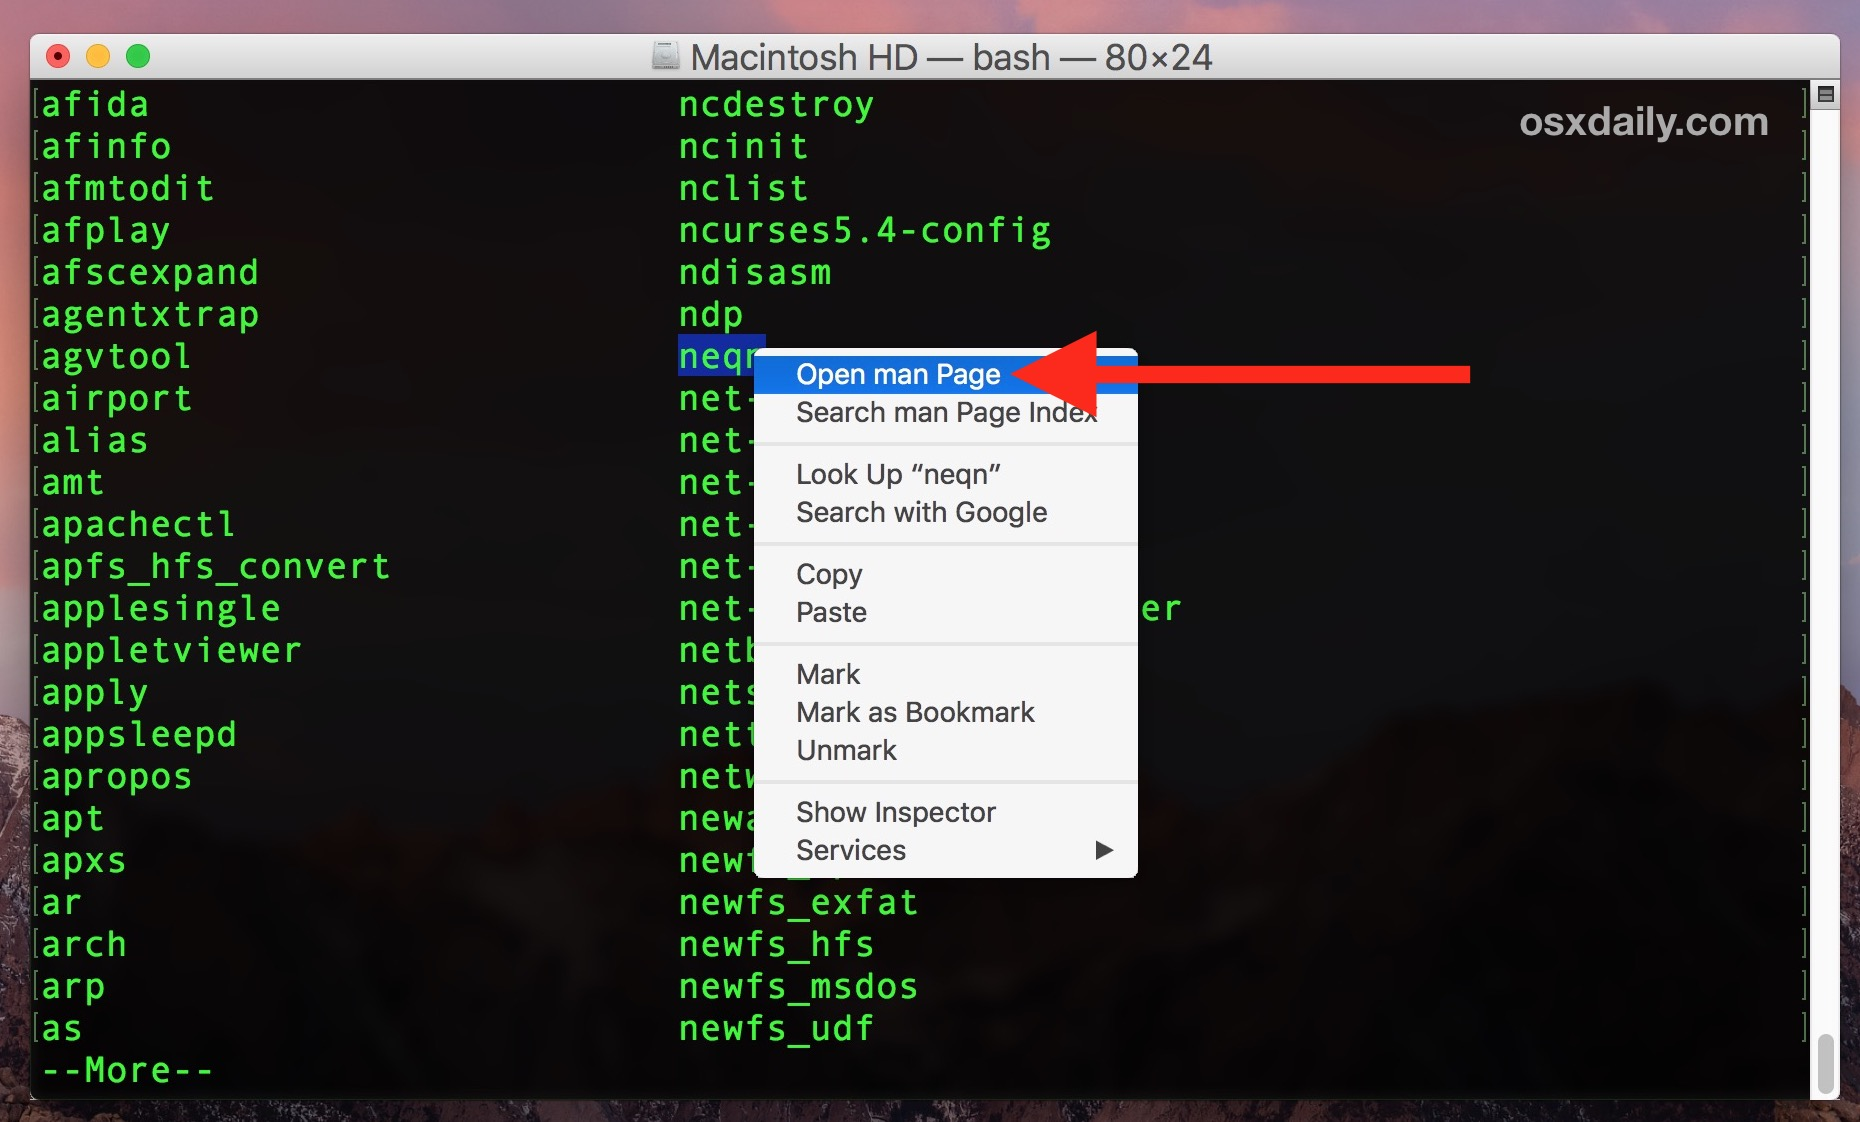 Show information about a specific terminal command